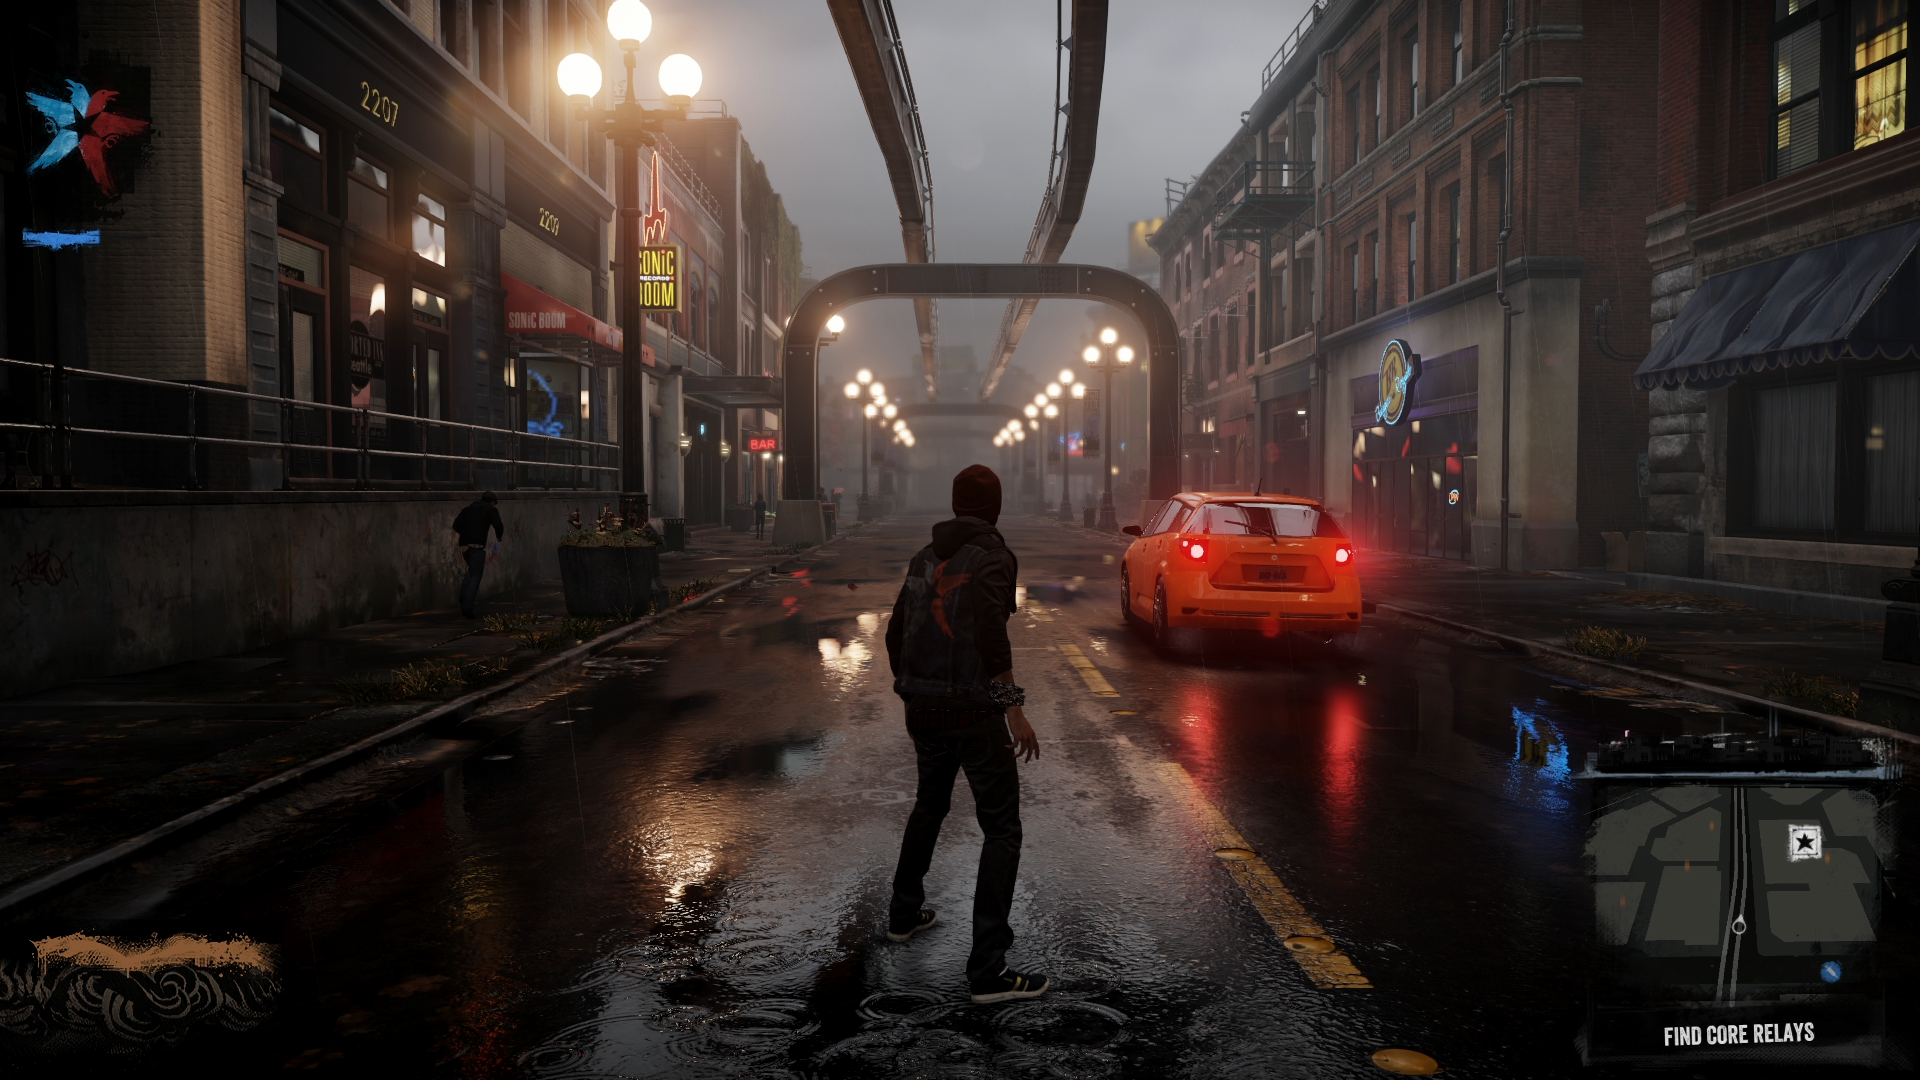 Infamous Second Son Wallpaper 1920x1080 67585